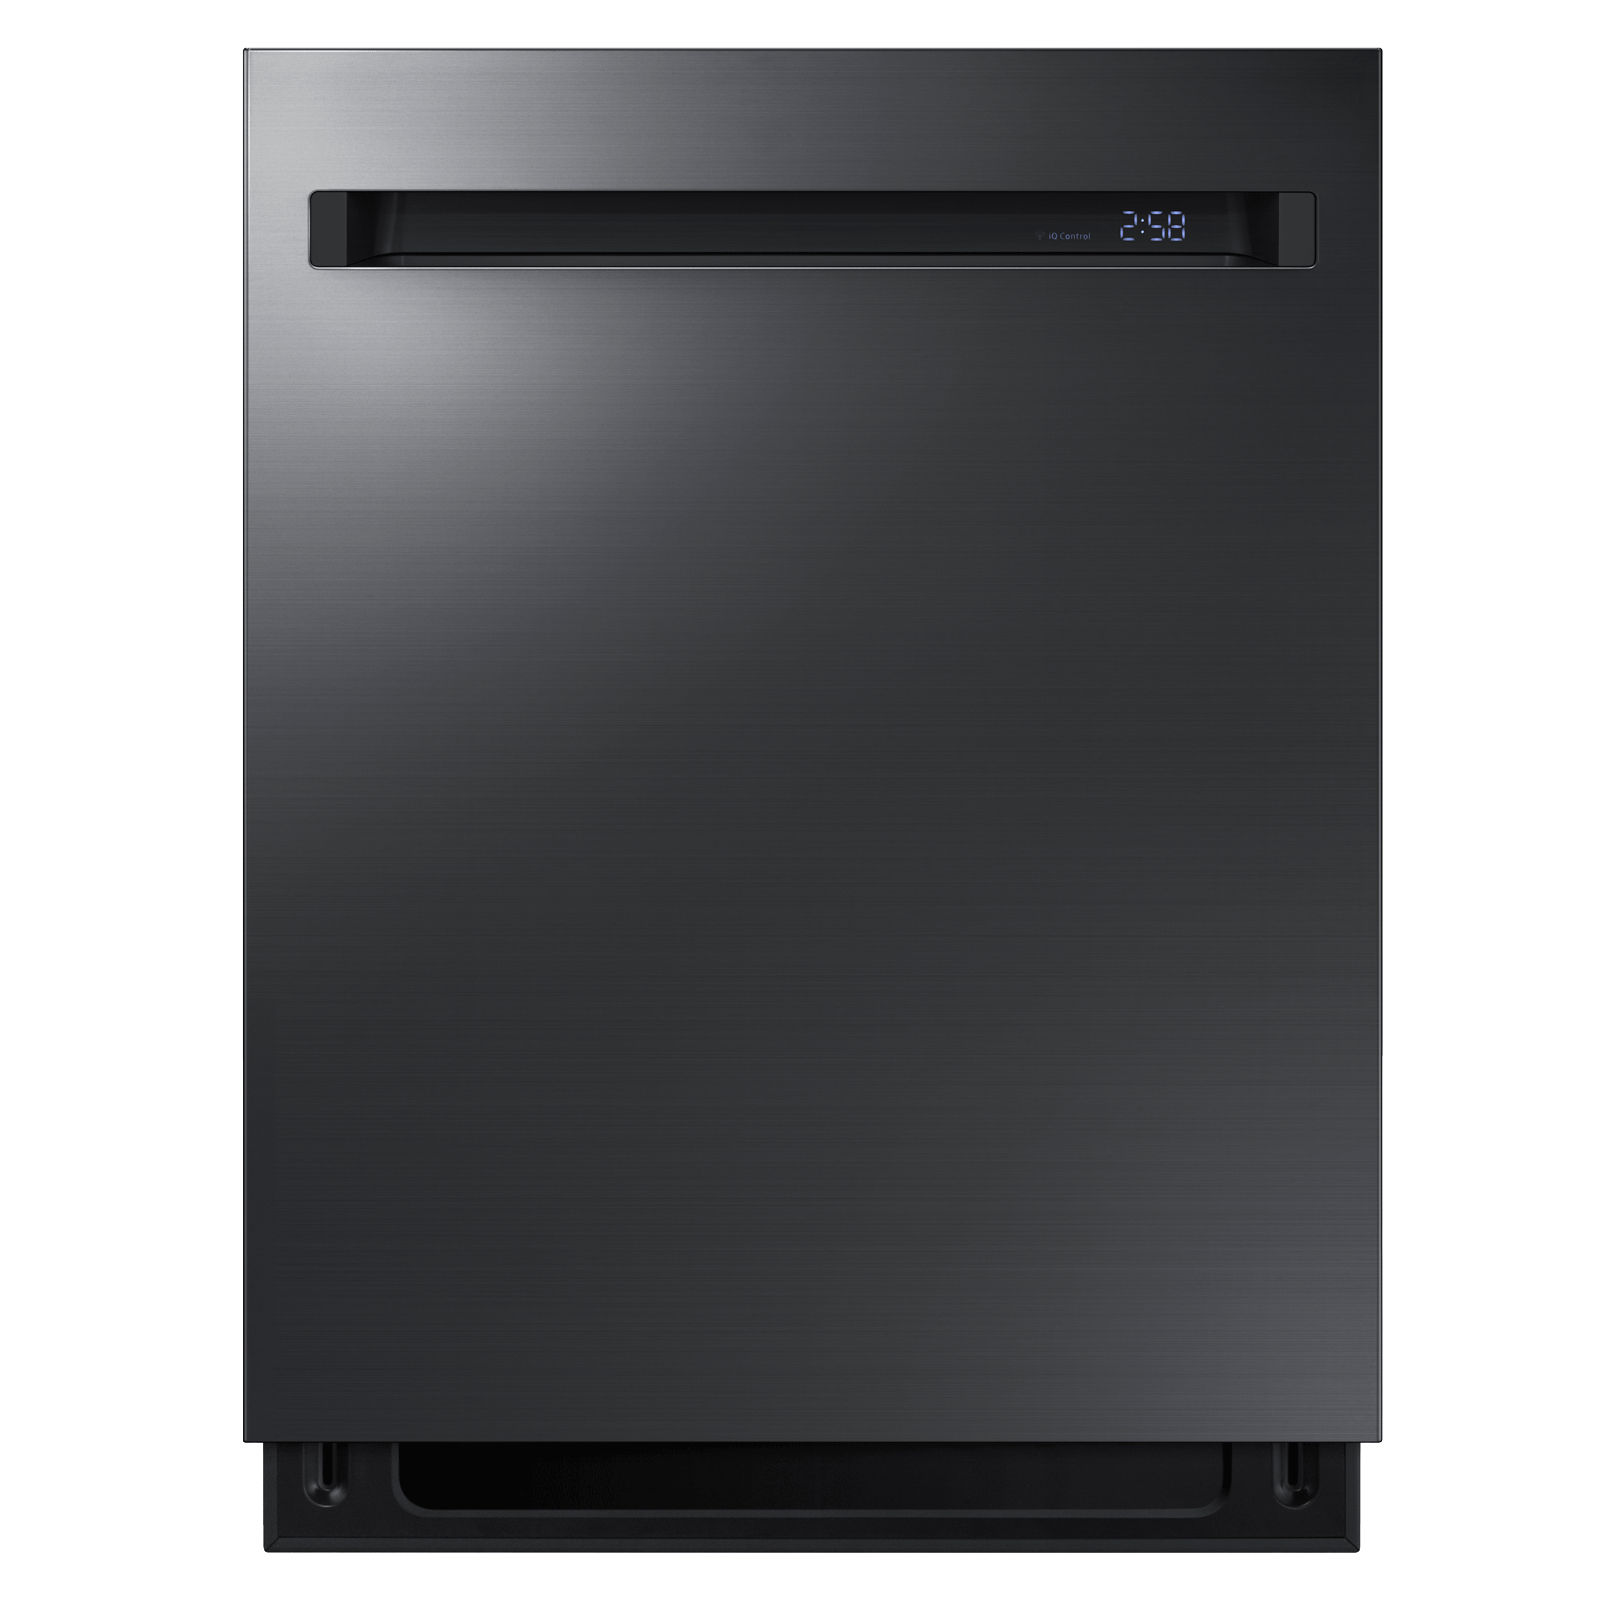 "Dacor Modernist 24"" Dishwasher, Graphite Stainless Steel"